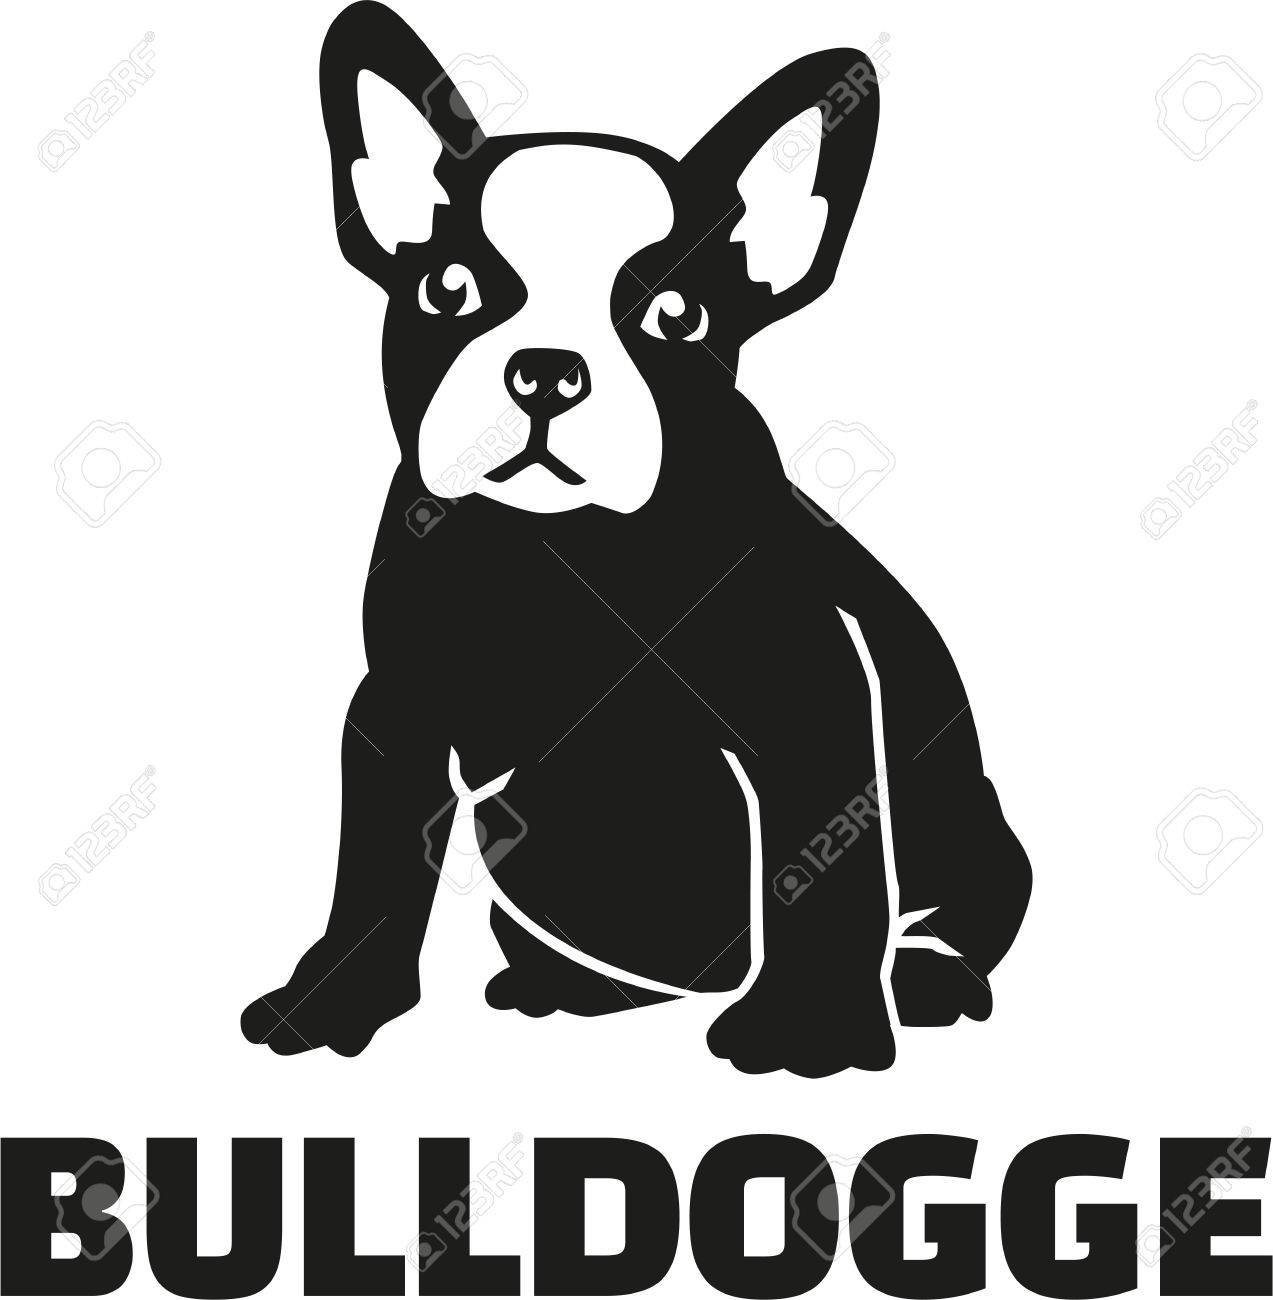 French bulldog with breed name - 51403512